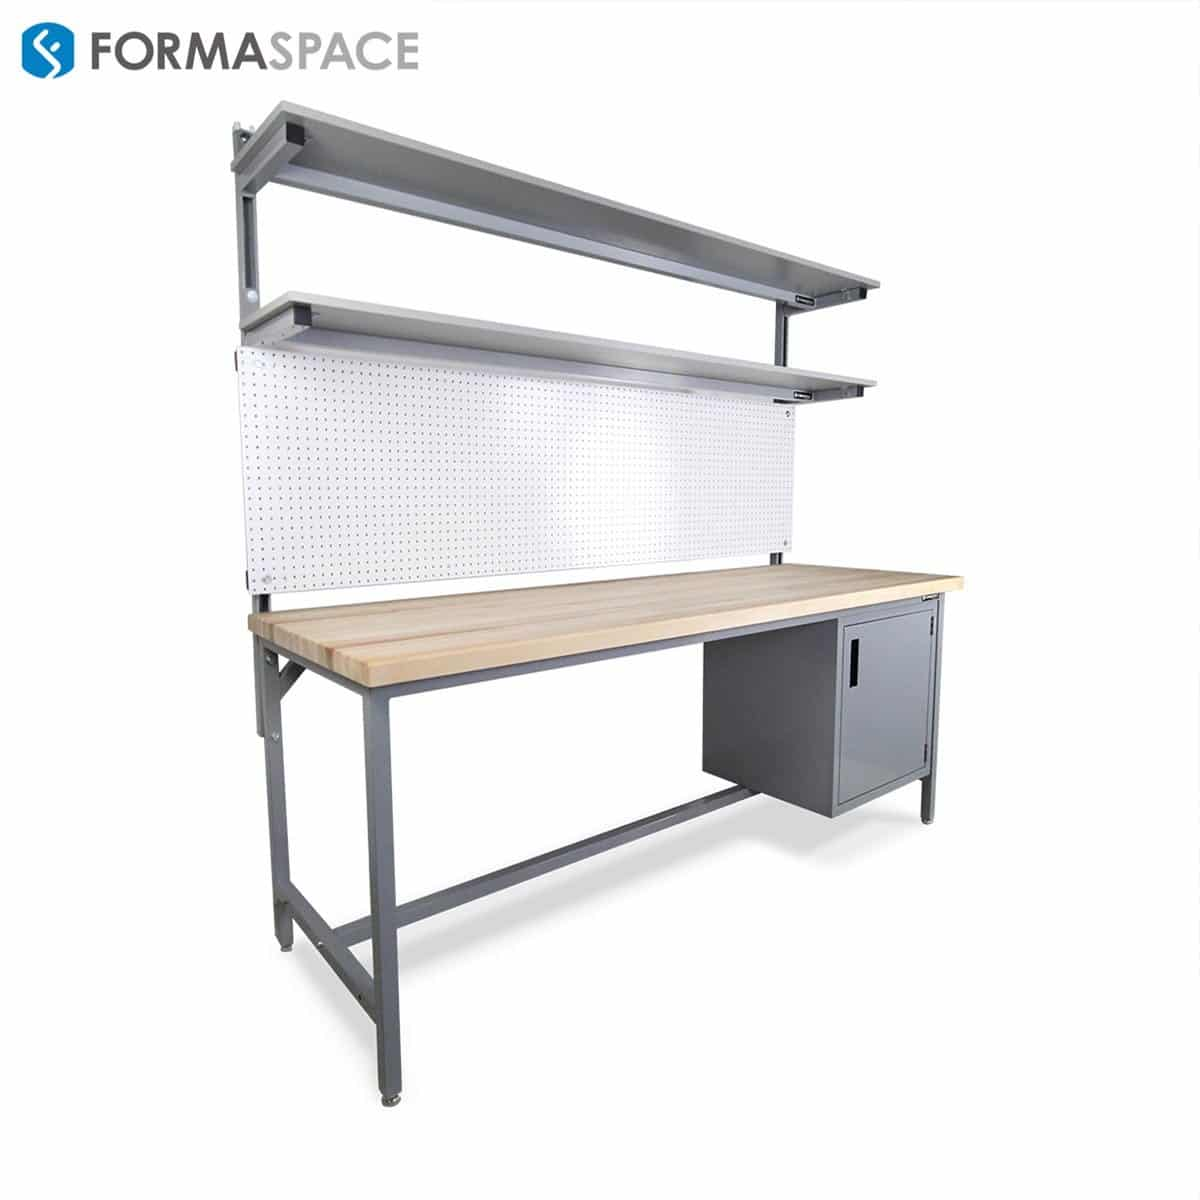 Large Butcher Block Benchmarx with Pegboard